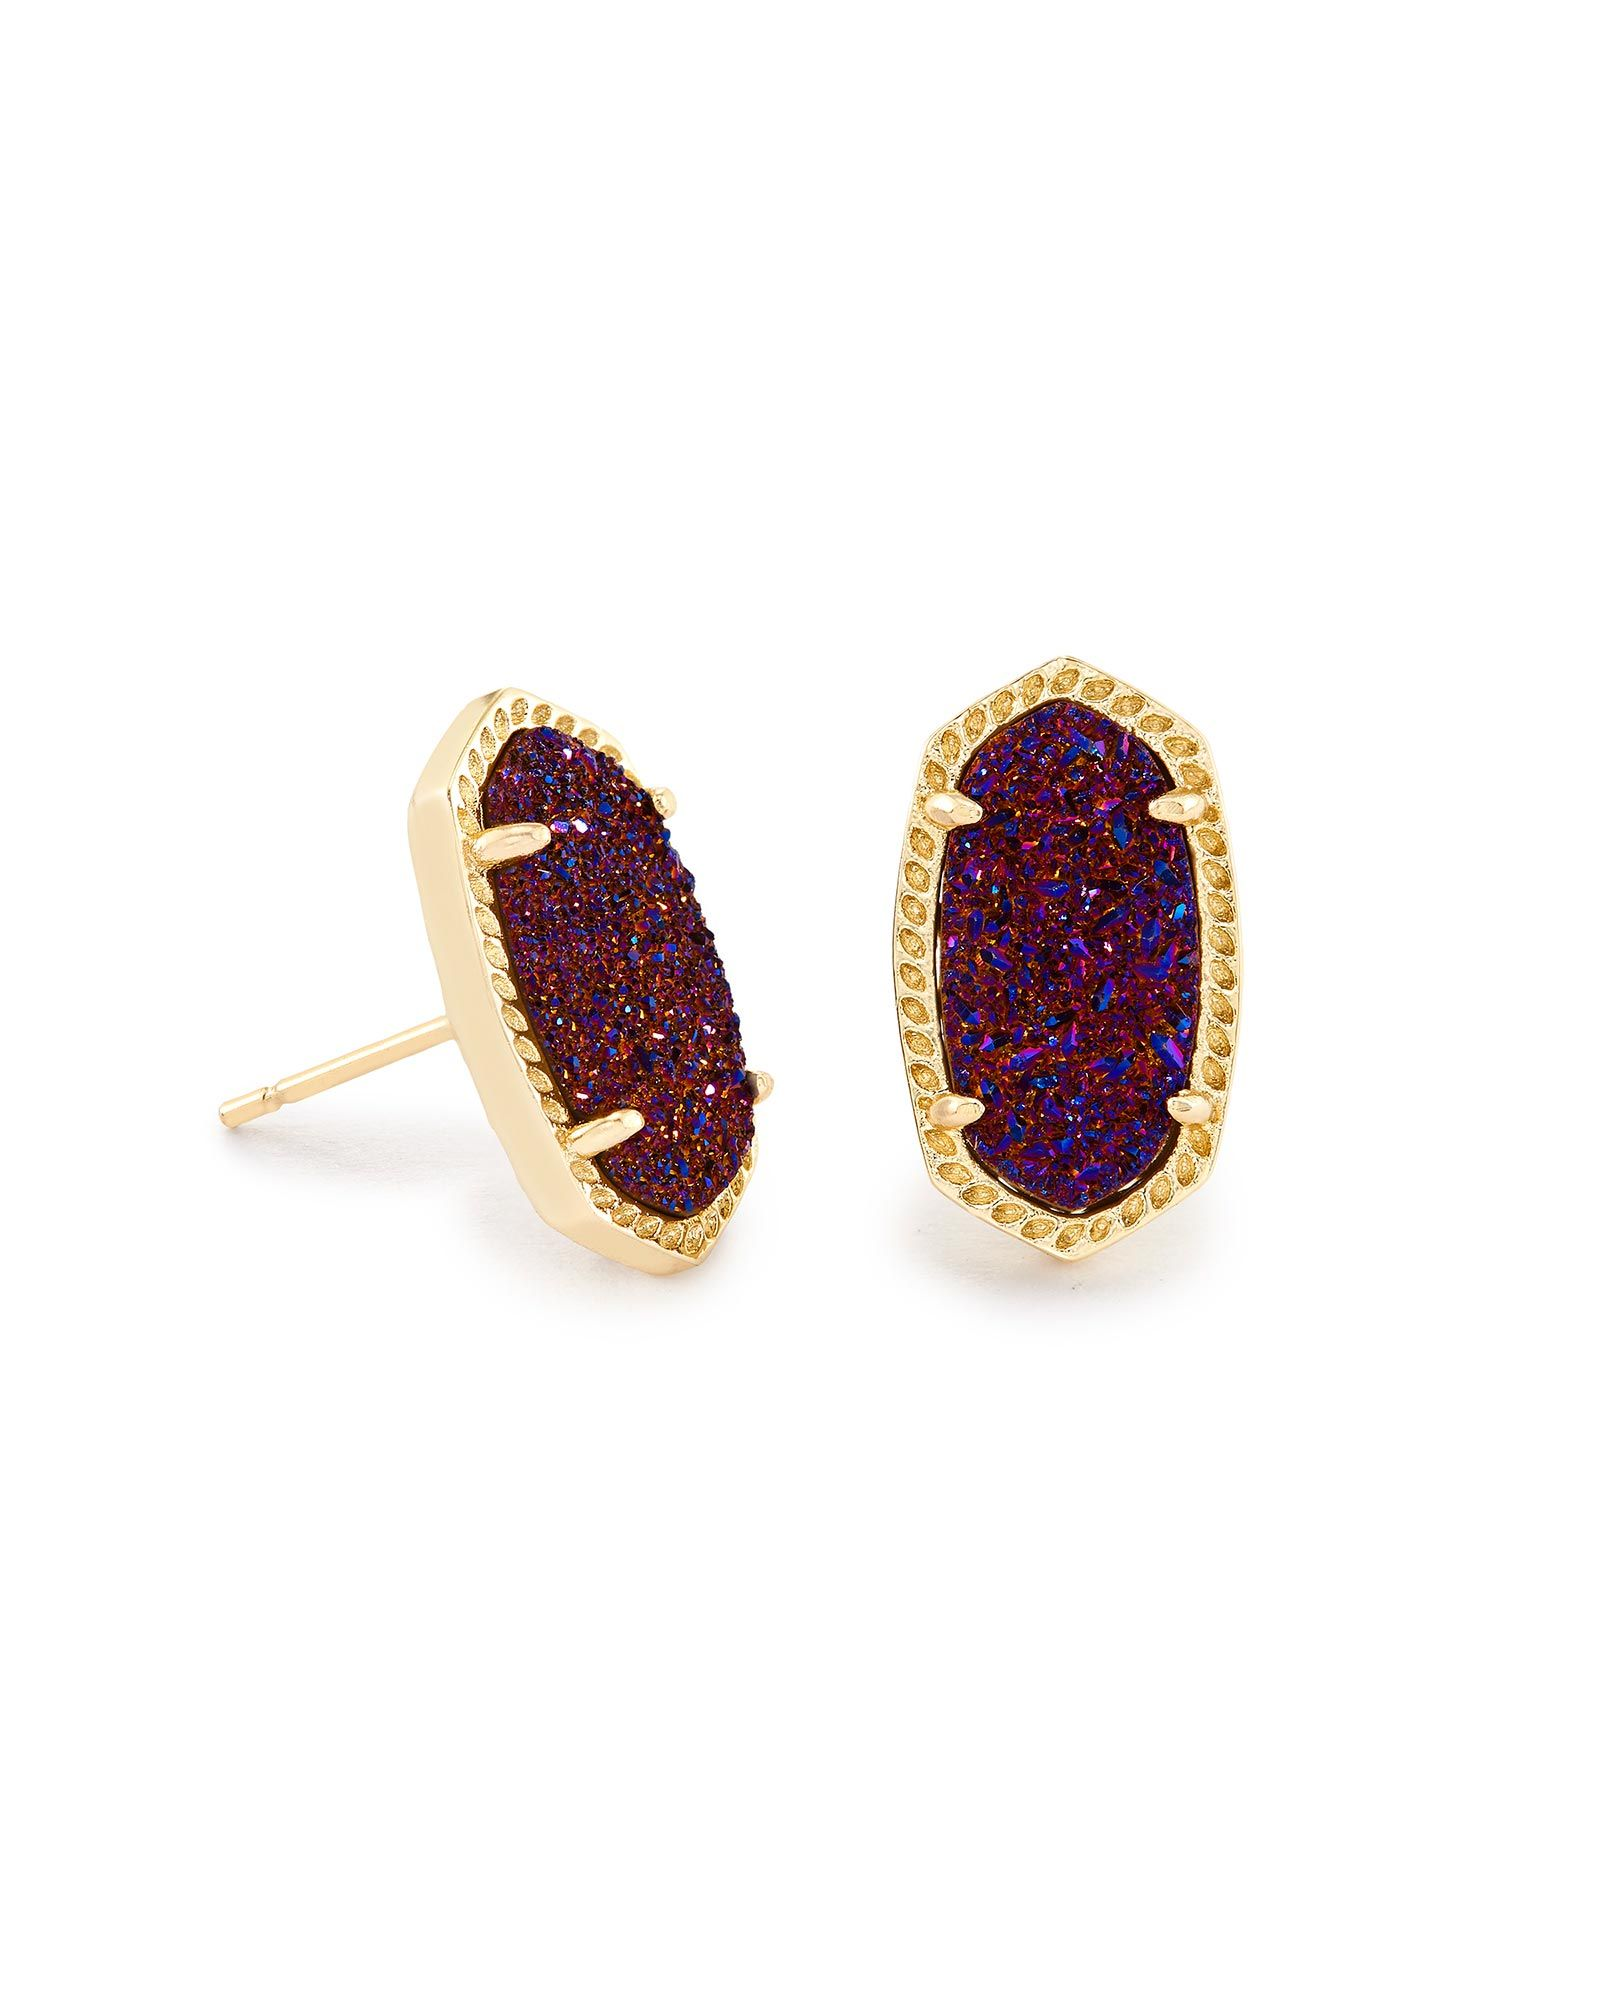 Gold Stud Earrings At Kendra Scott With A Delicate Plum Drusy Oval Stone And Metallic Post Frame The Ellie Are Must Have Accessory